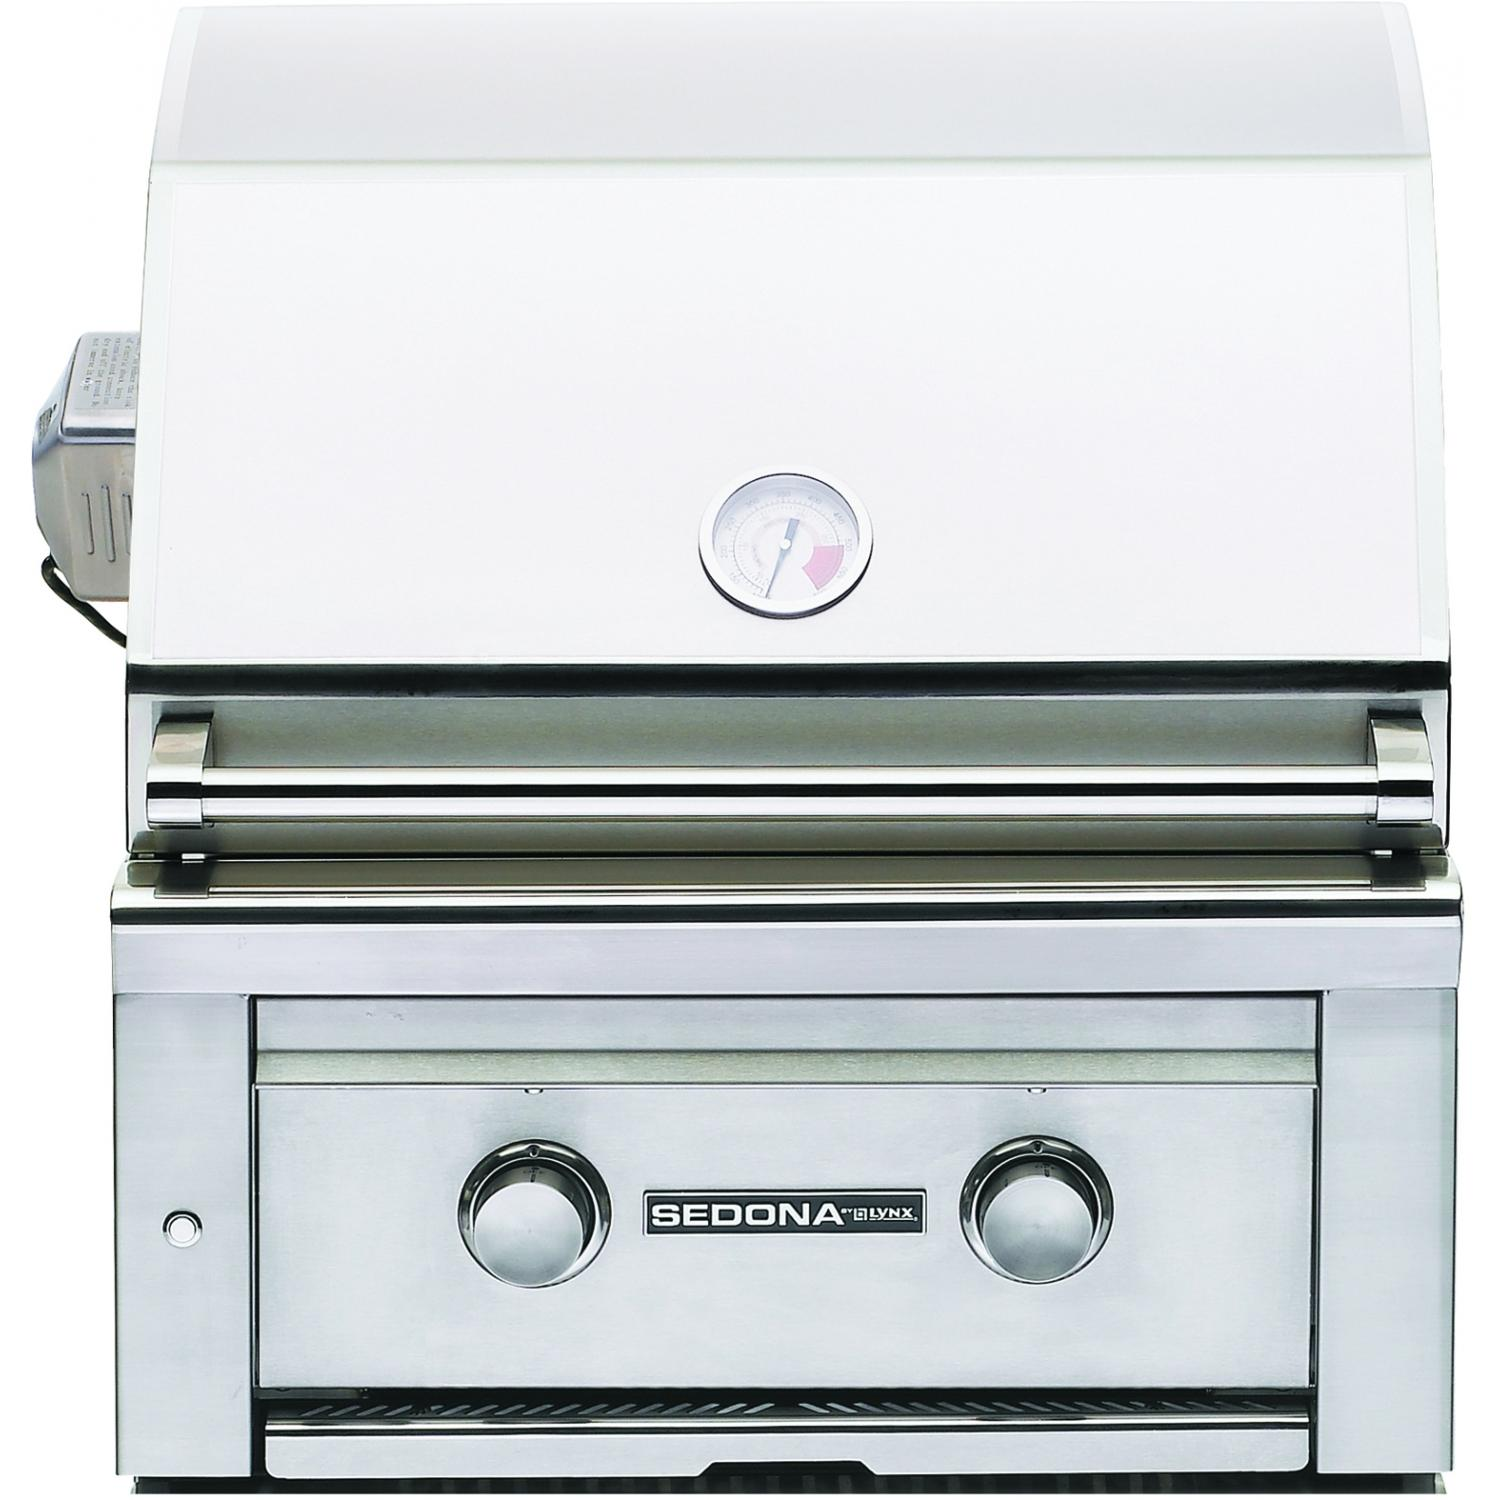 Lynx Sedona By Lynx 24-inch Built-in Natural Gas Grill With Prosear Burner L400ps at Sears.com